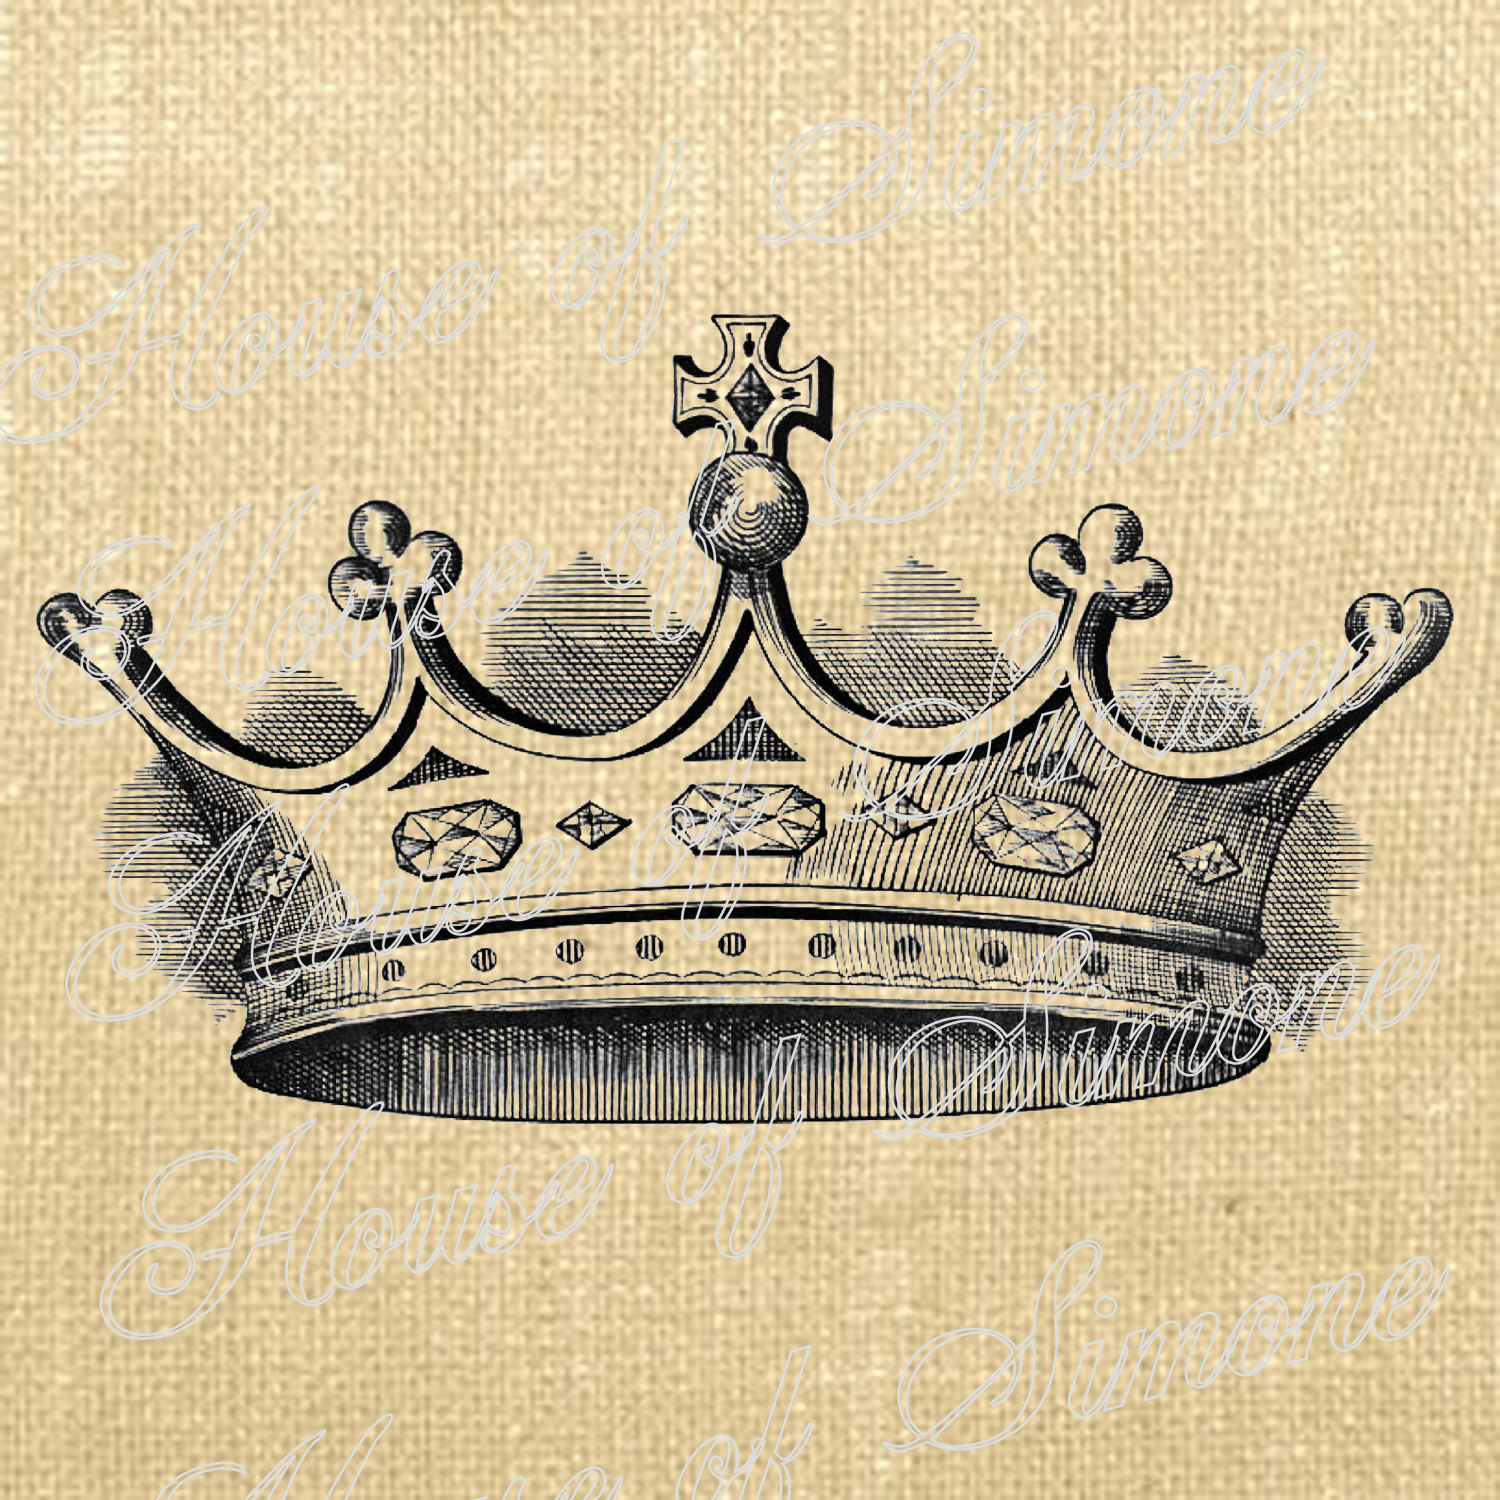 King And Queen Crown Drawing at GetDrawings.com | Free for personal ...